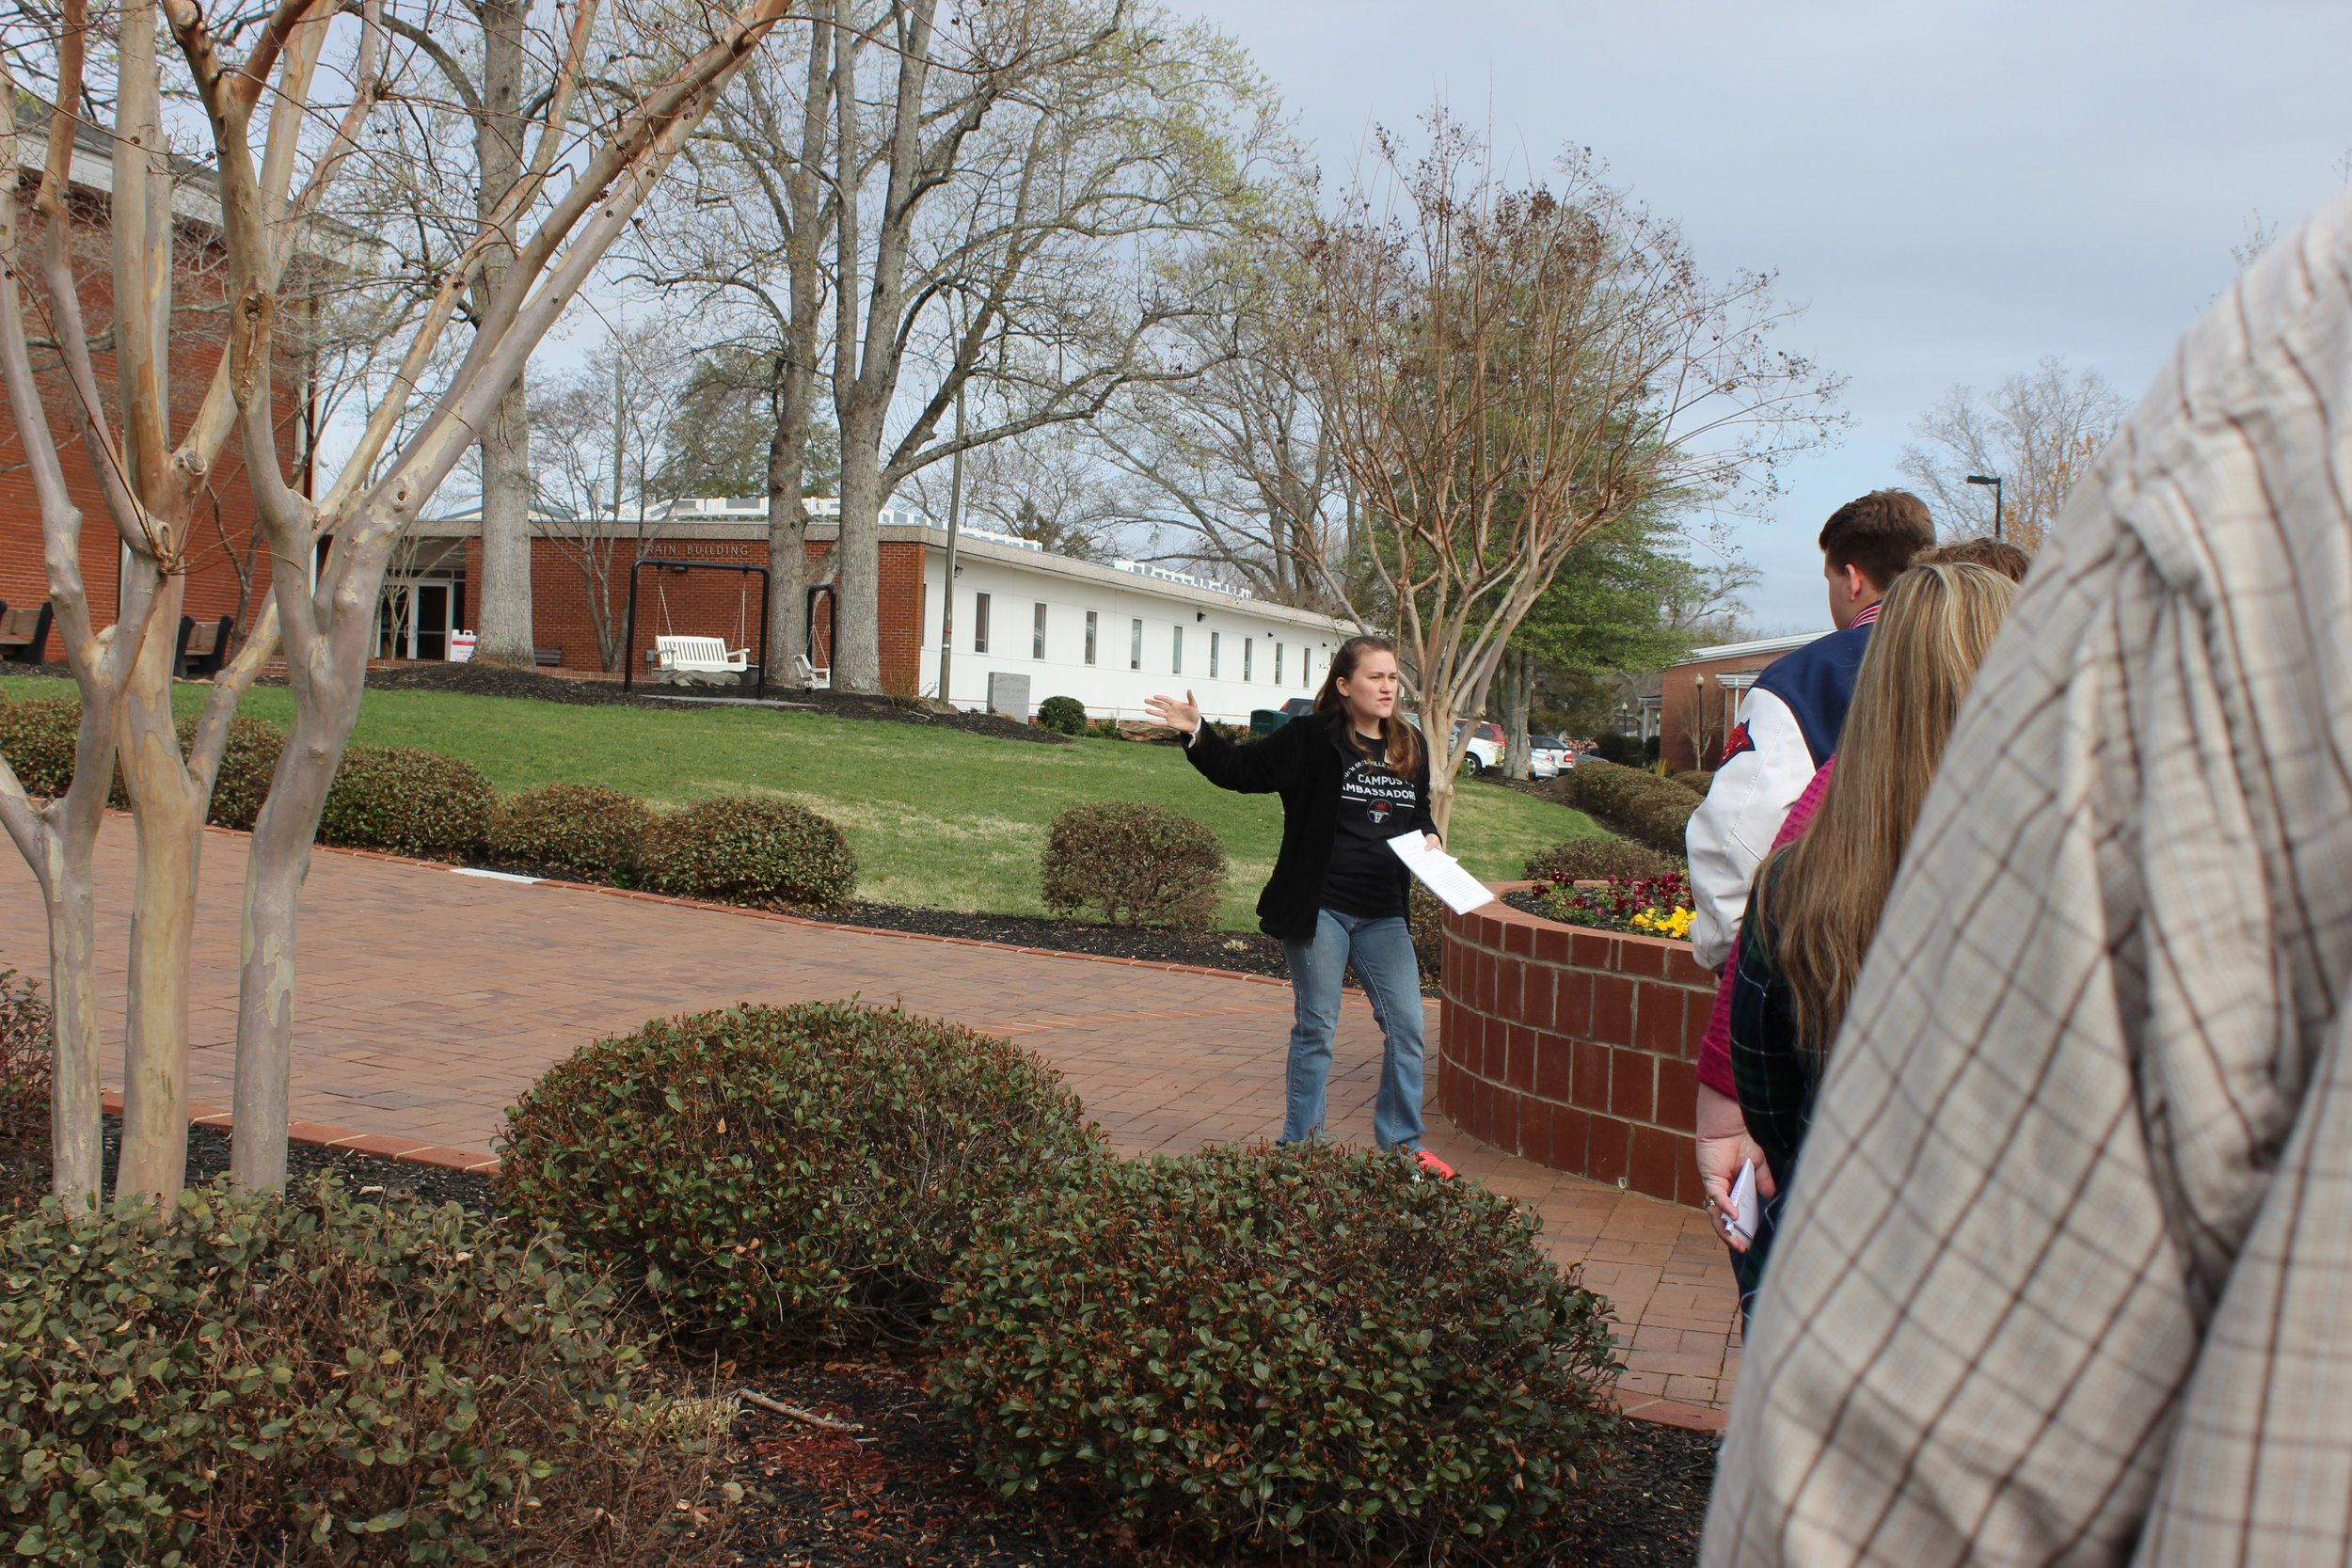 Abigail Johnson led a fantastic tour, ensuring that her group had fun while they learned about NGU.